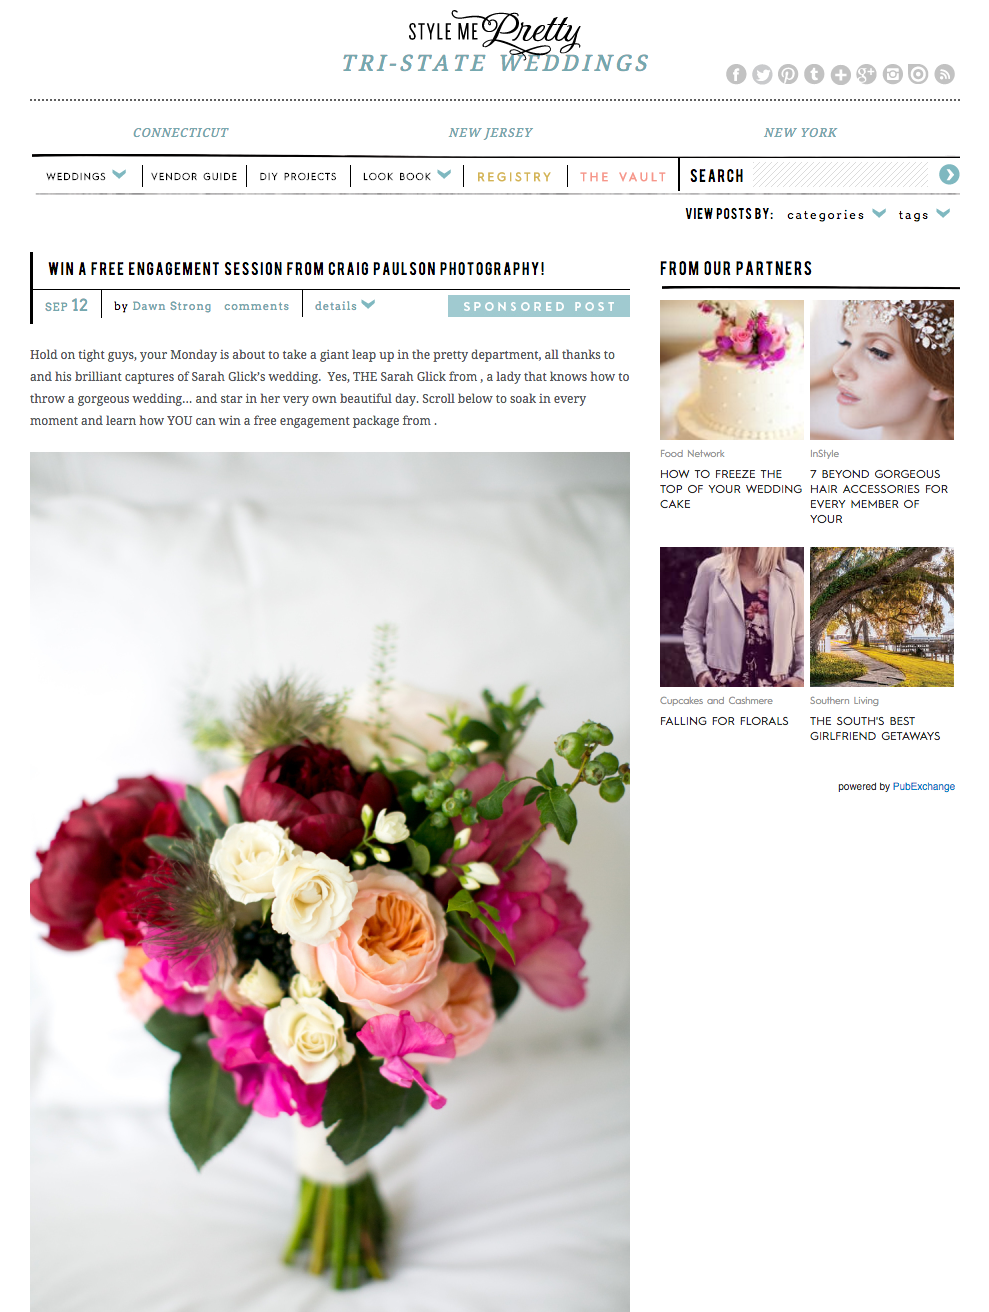 Style me prettys feature on tri state weddings and how you can win stylemeprettyg mightylinksfo